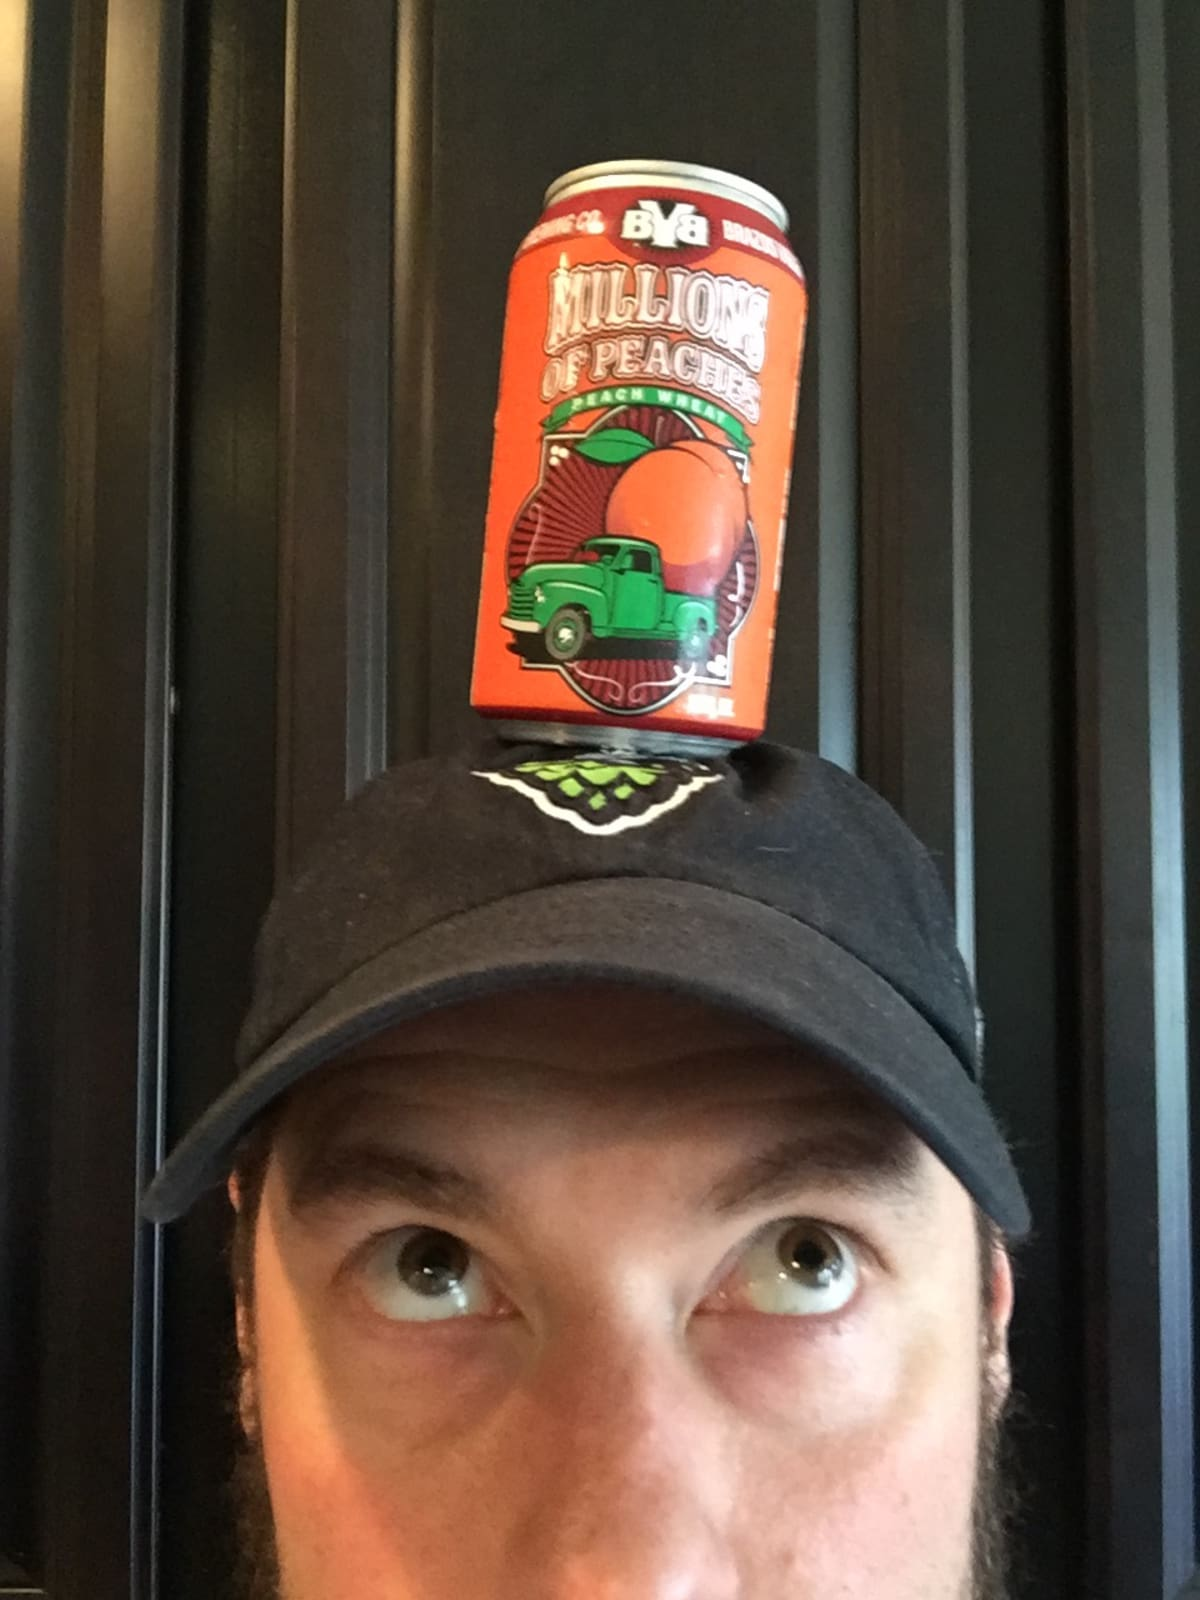 Josh Stewart Brazos Valley Brewing Millions of Peaches